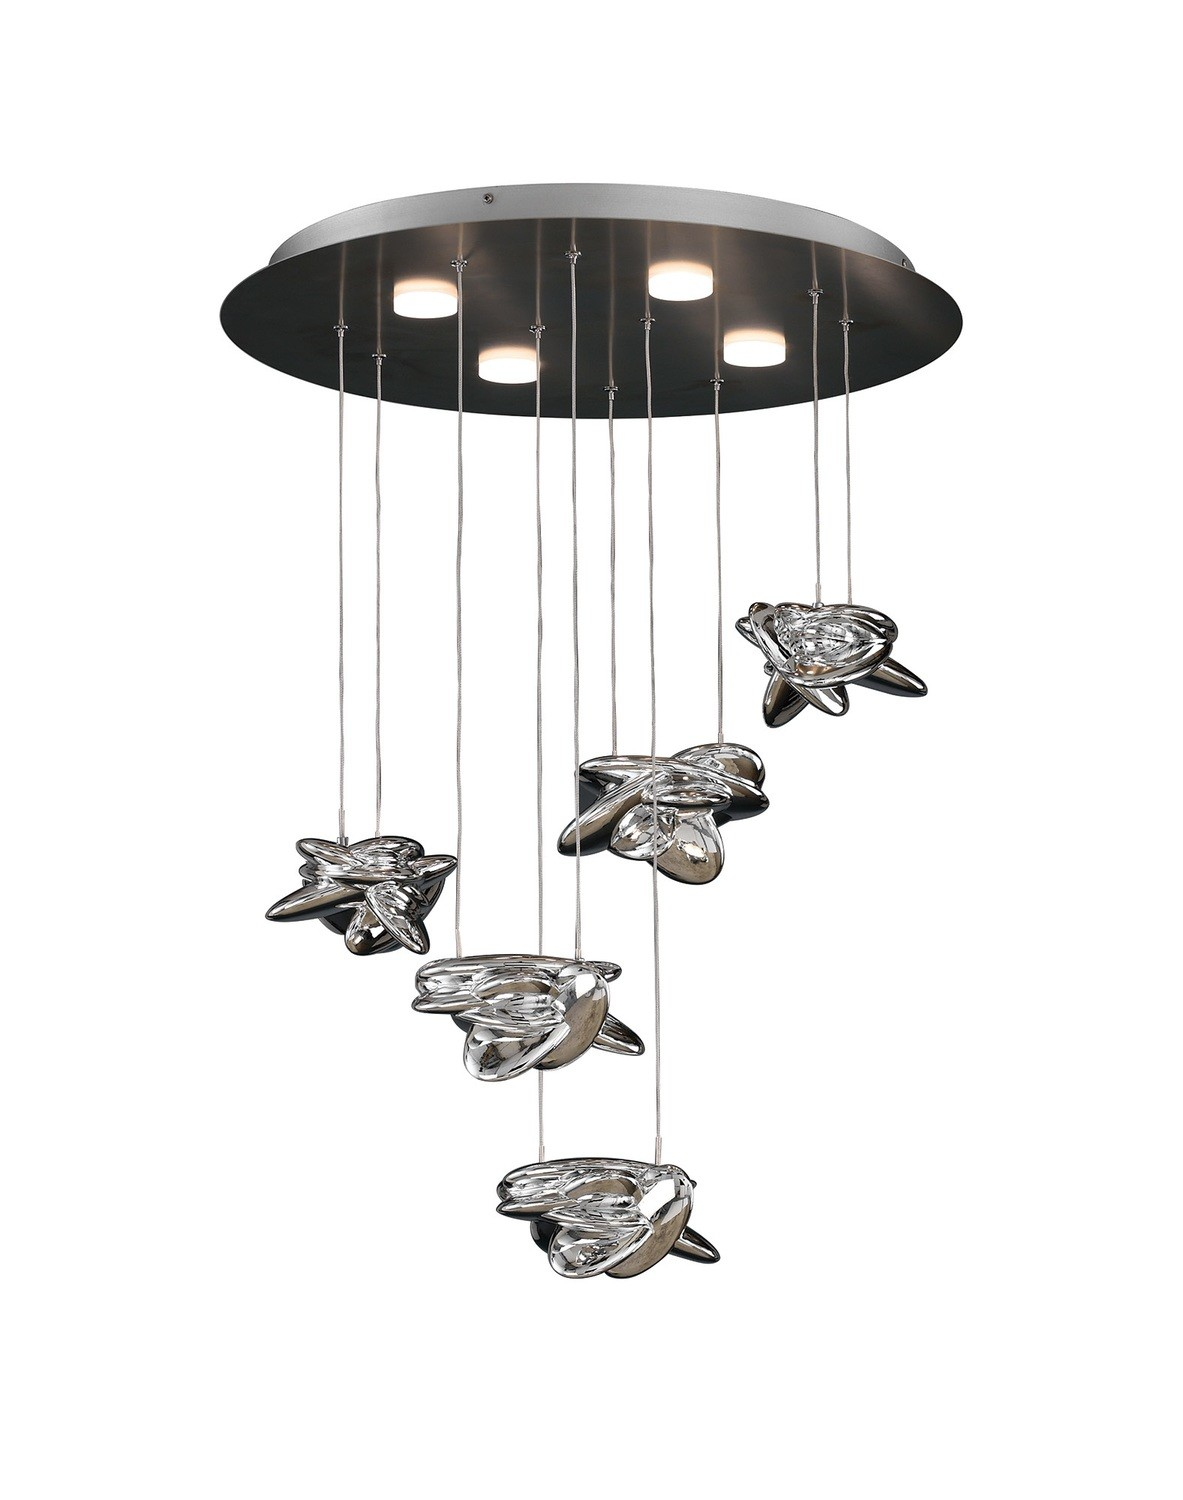 Nido Pendant 62cm Round 5 + 4 Lights 30W + 20W LED 3000K, 4000lm, Chrome, 3yrs Warranty